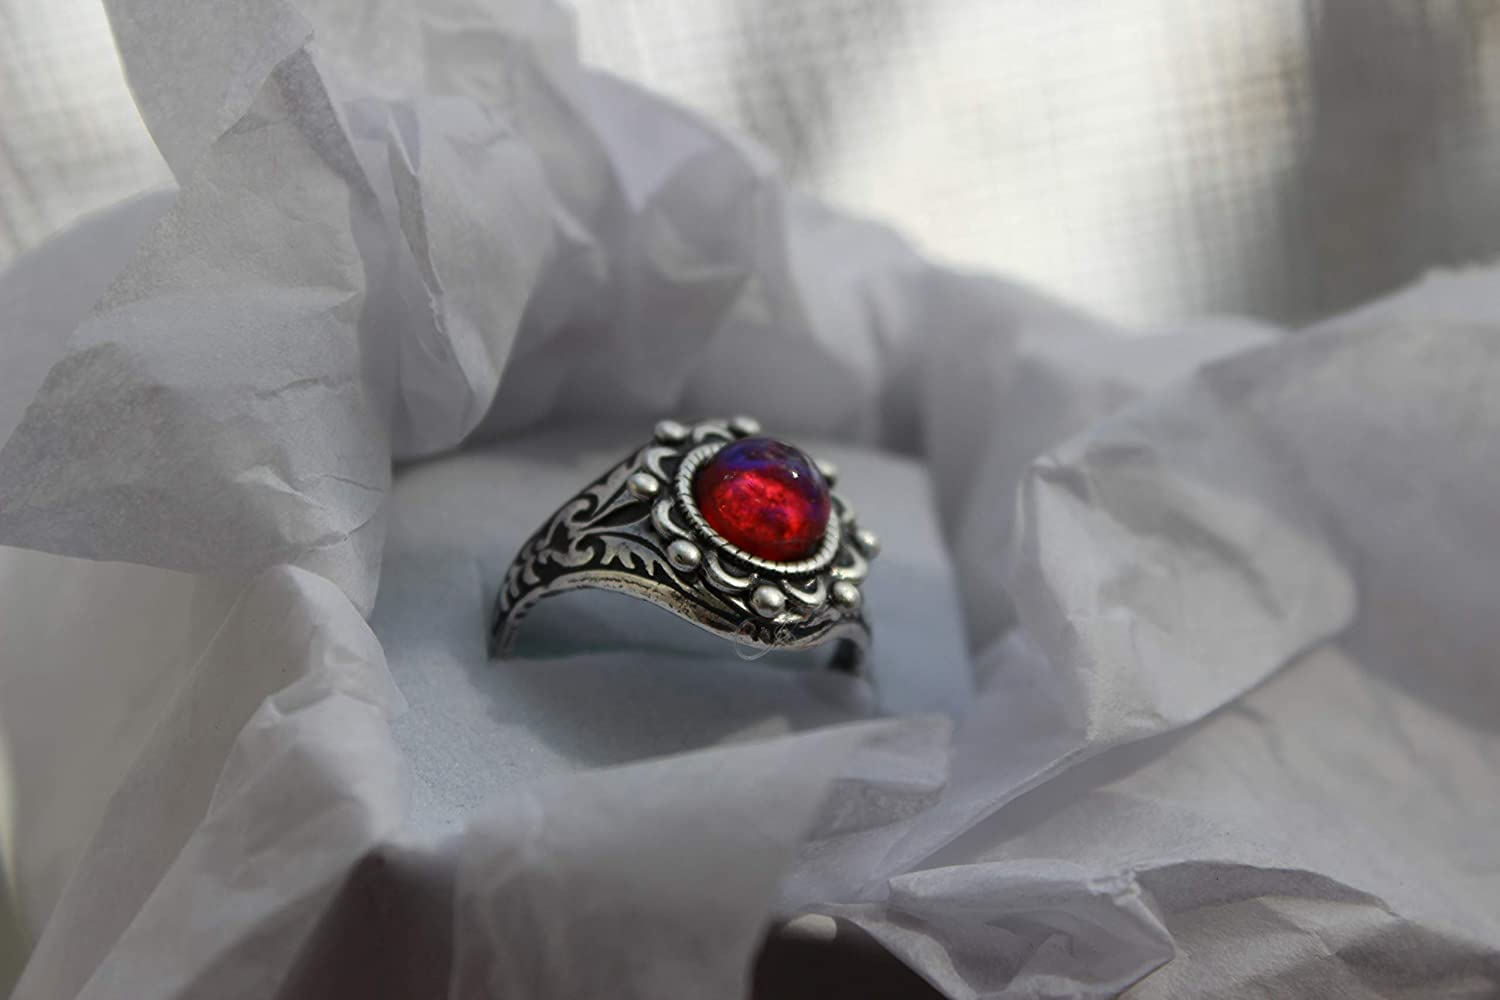 silver renaissance setting adjustable ring base. Dragons Breath Fire opal ring Victorian setting 7mm